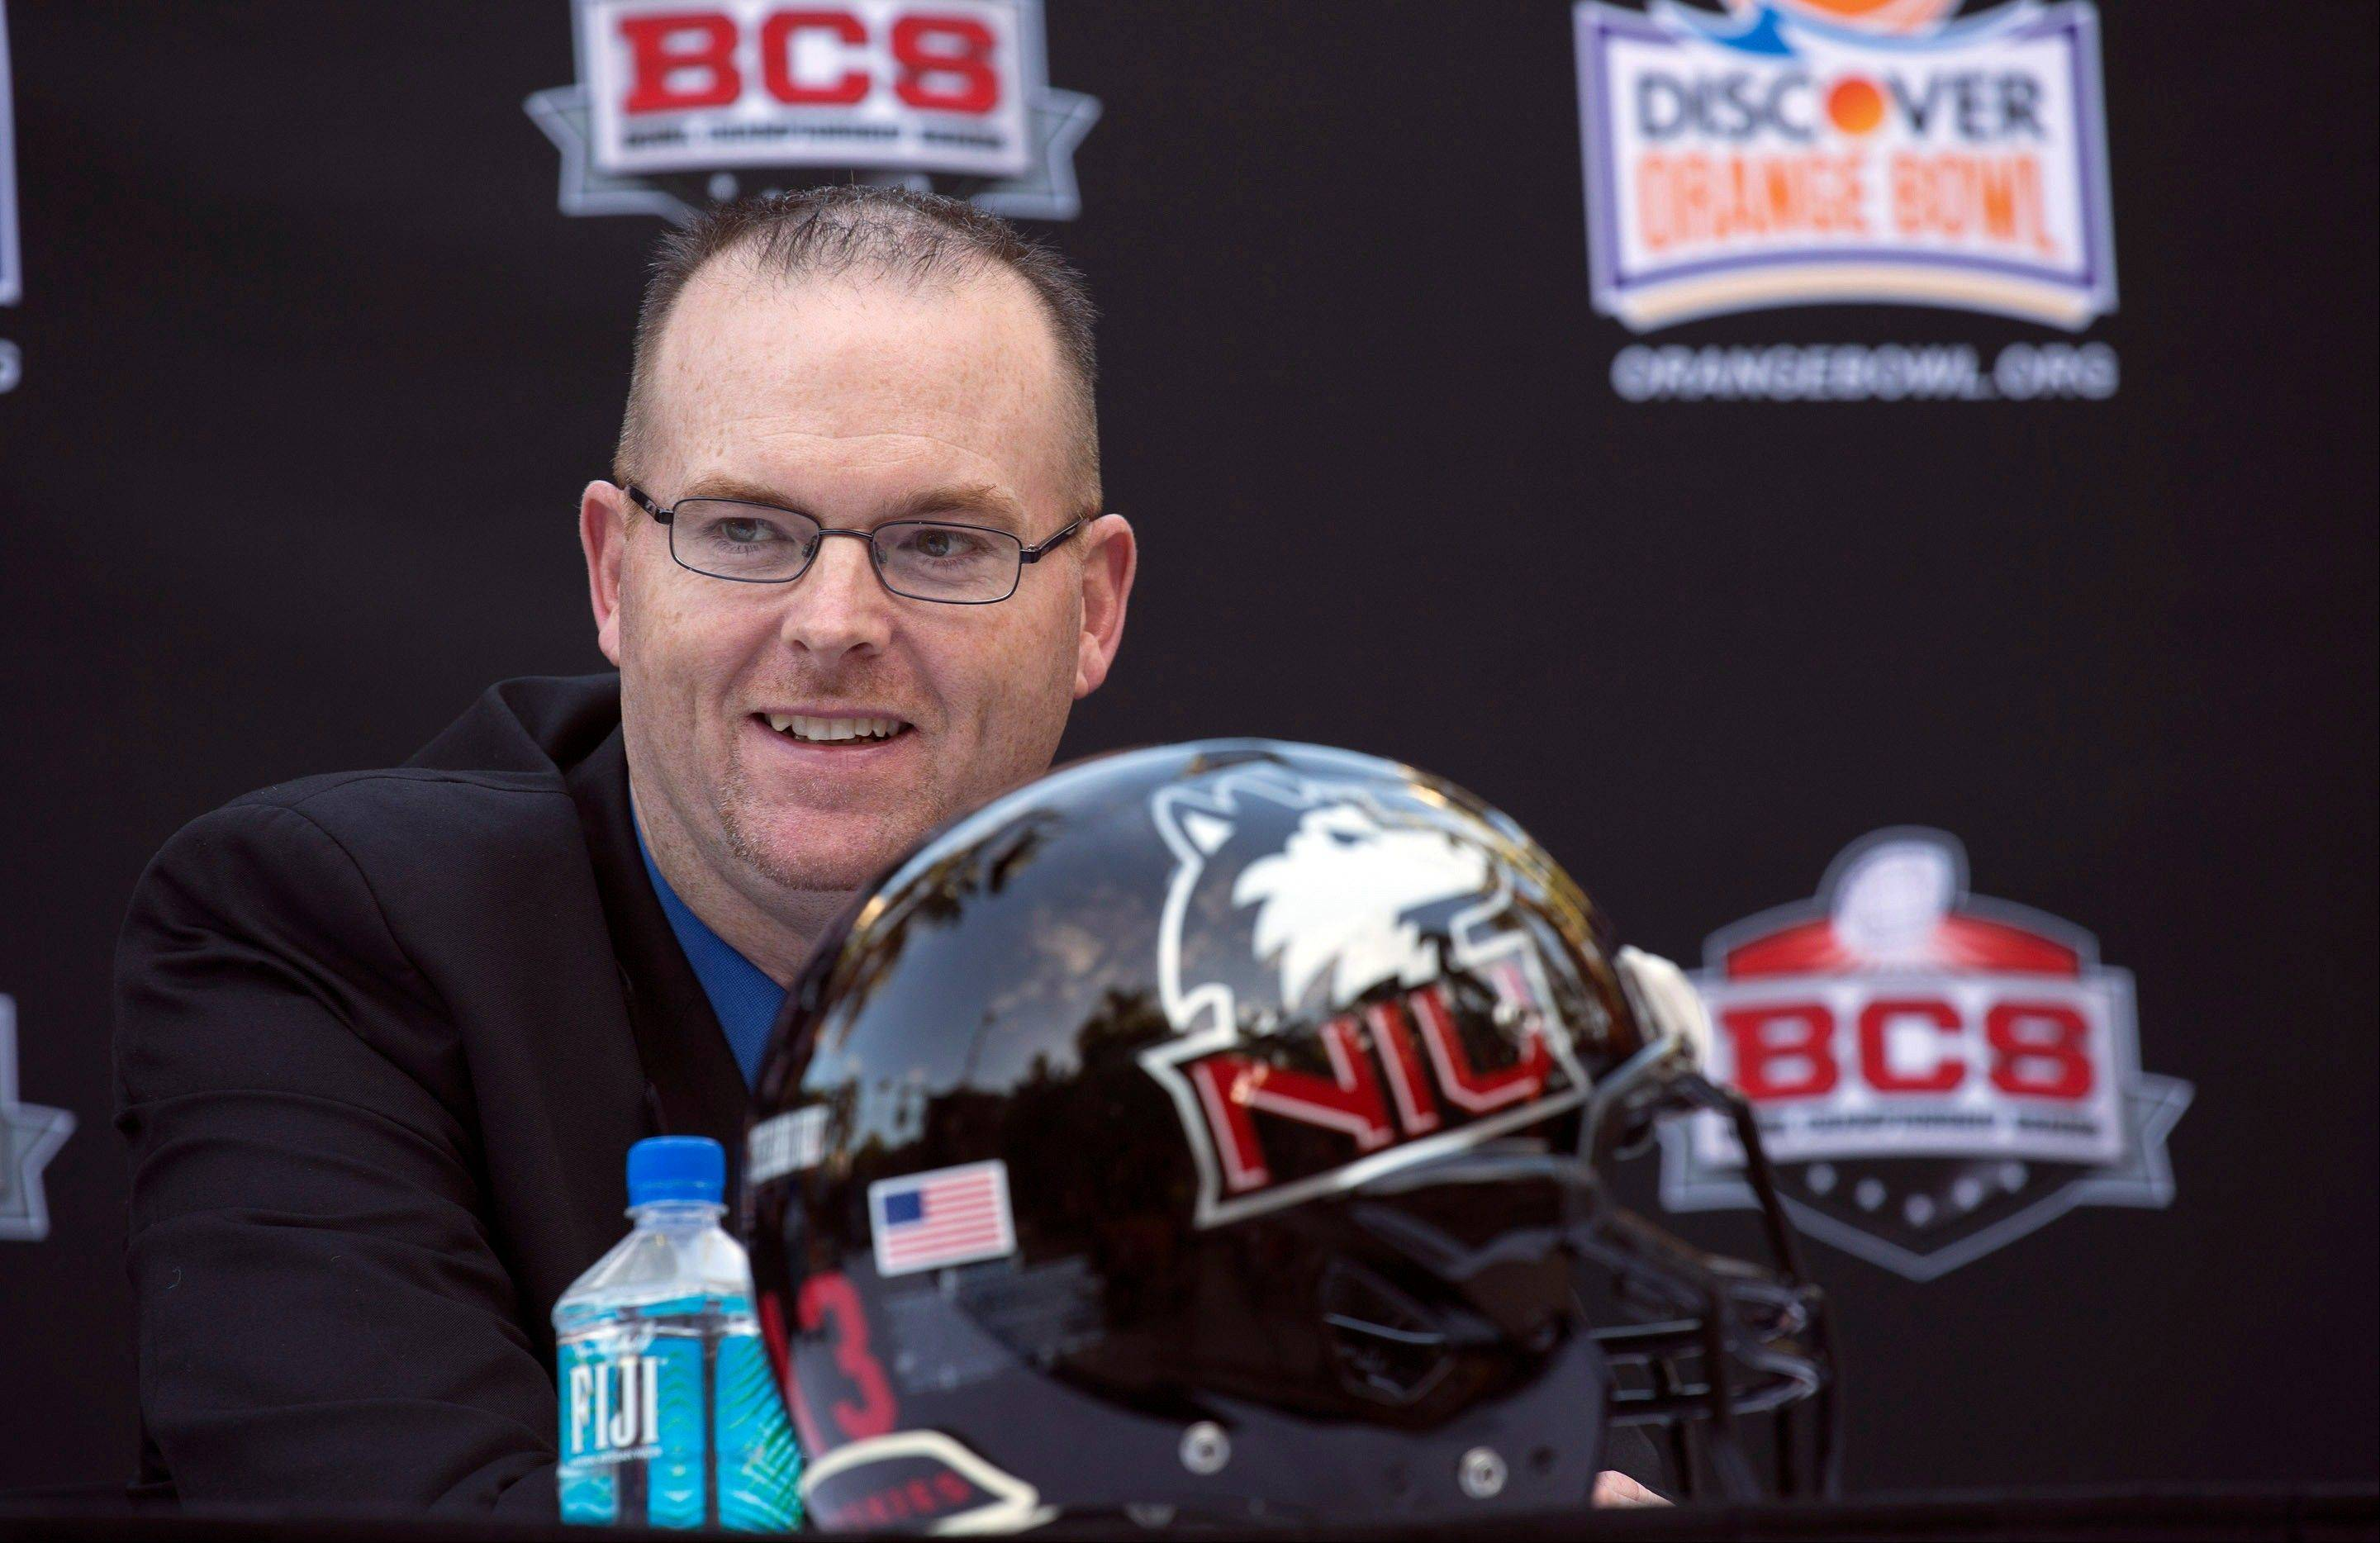 Rod Carey was the obvious choice to take over as coach of the NIU football team when Dave Doeren left for North Carolina State.